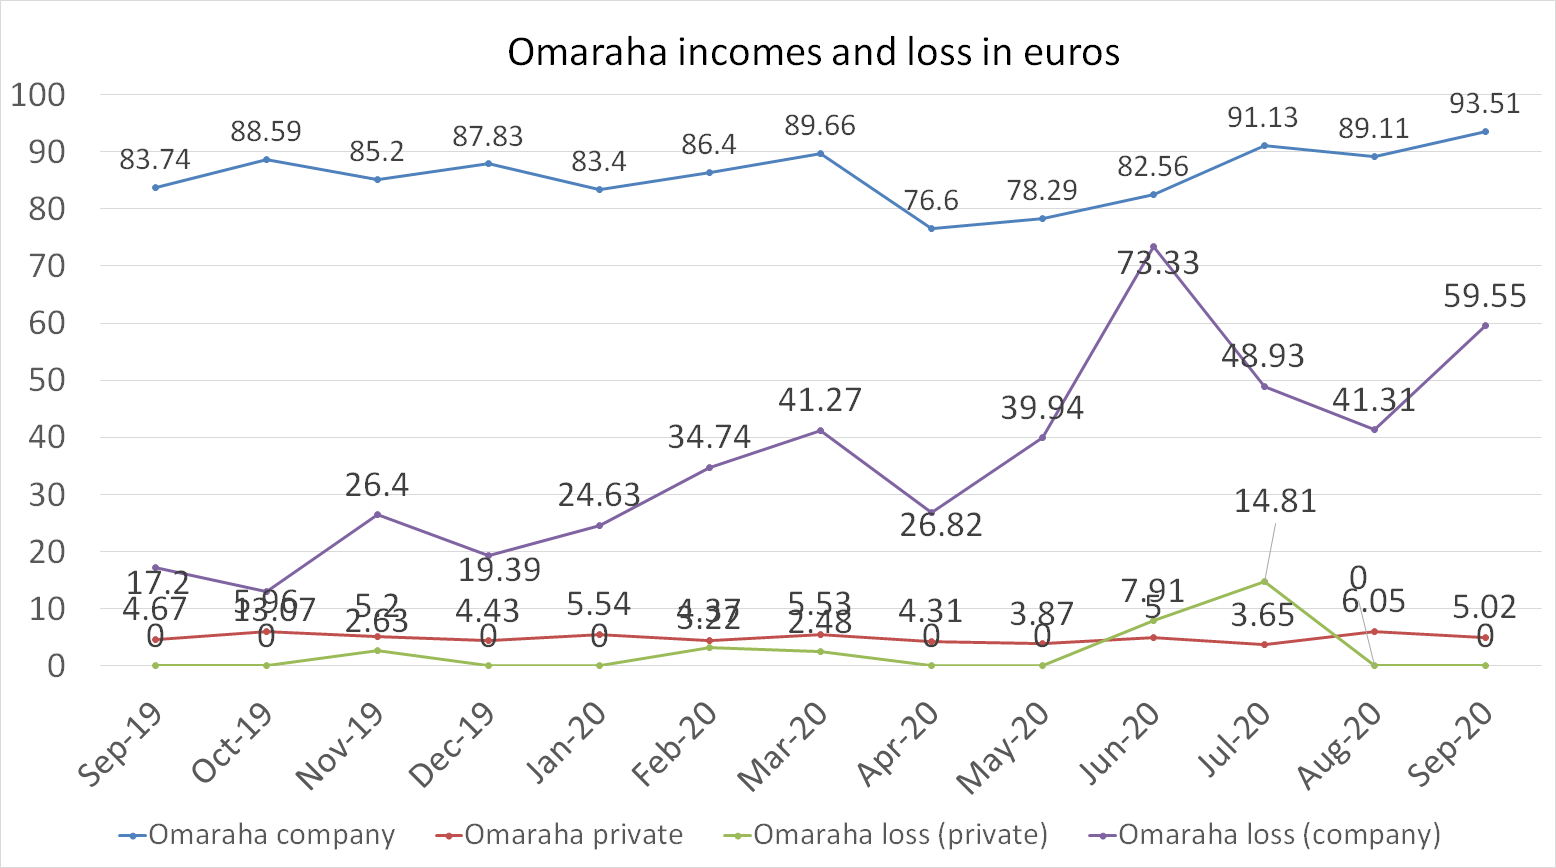 Omaraha incomes and loss in euros september 2020